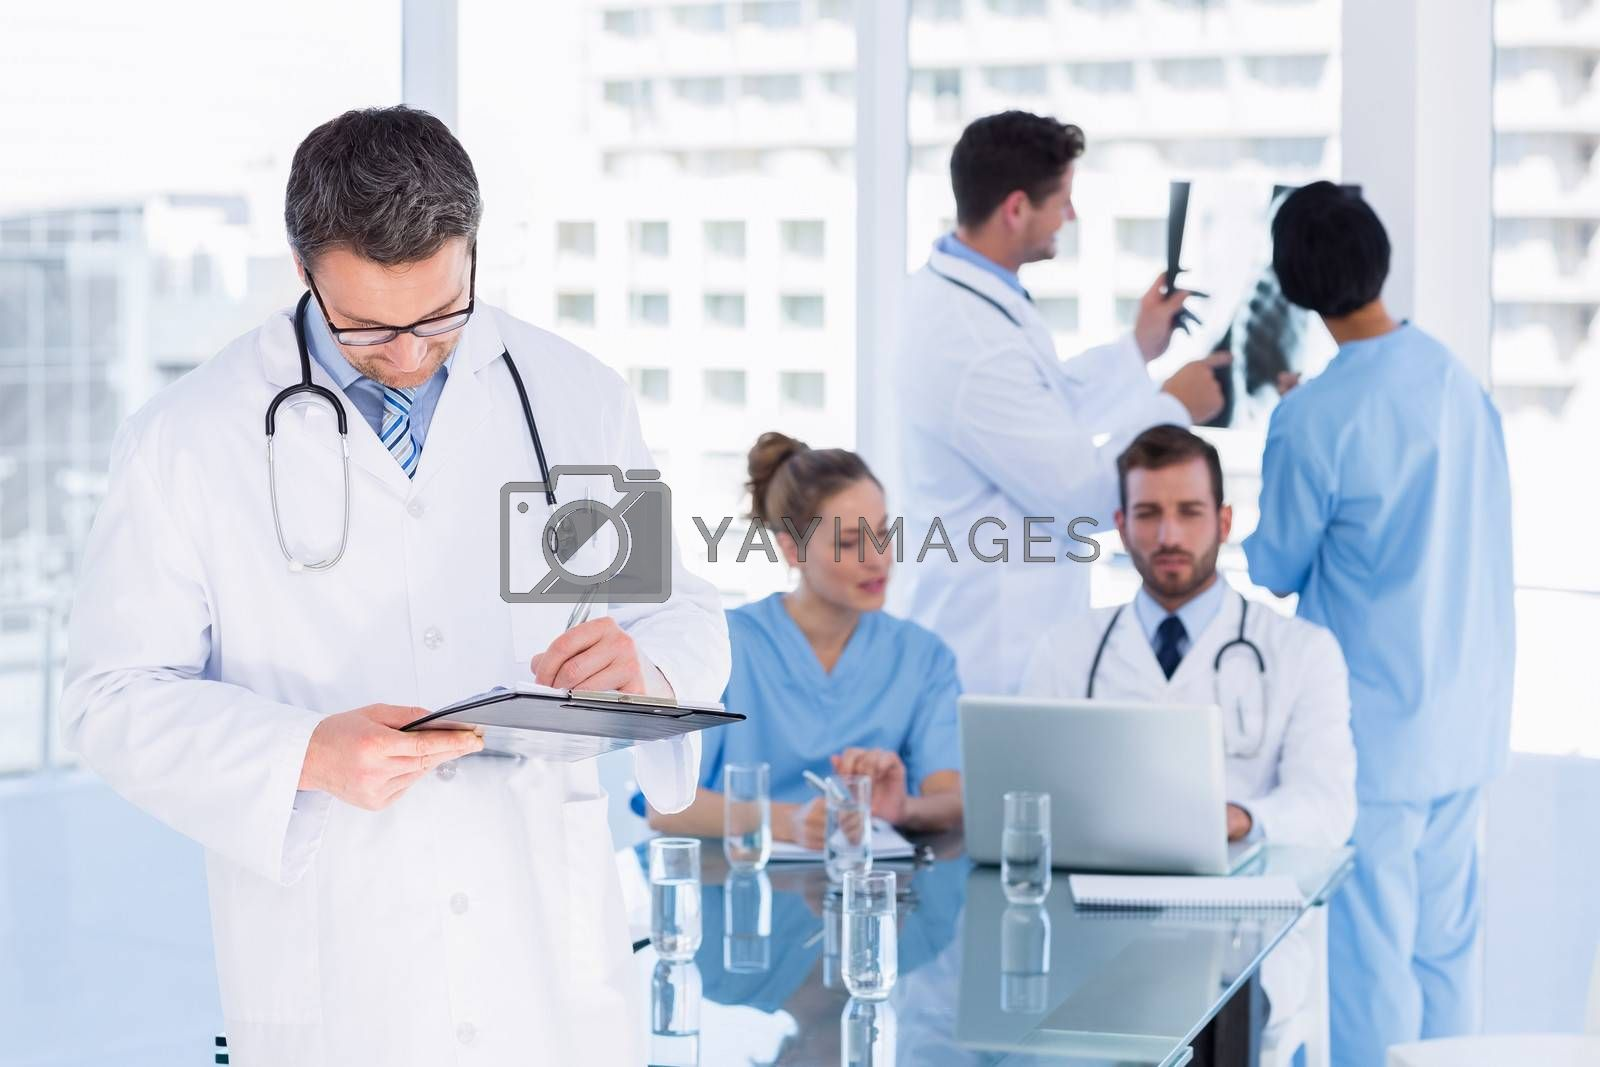 Concentrated doctors at work in the medical office